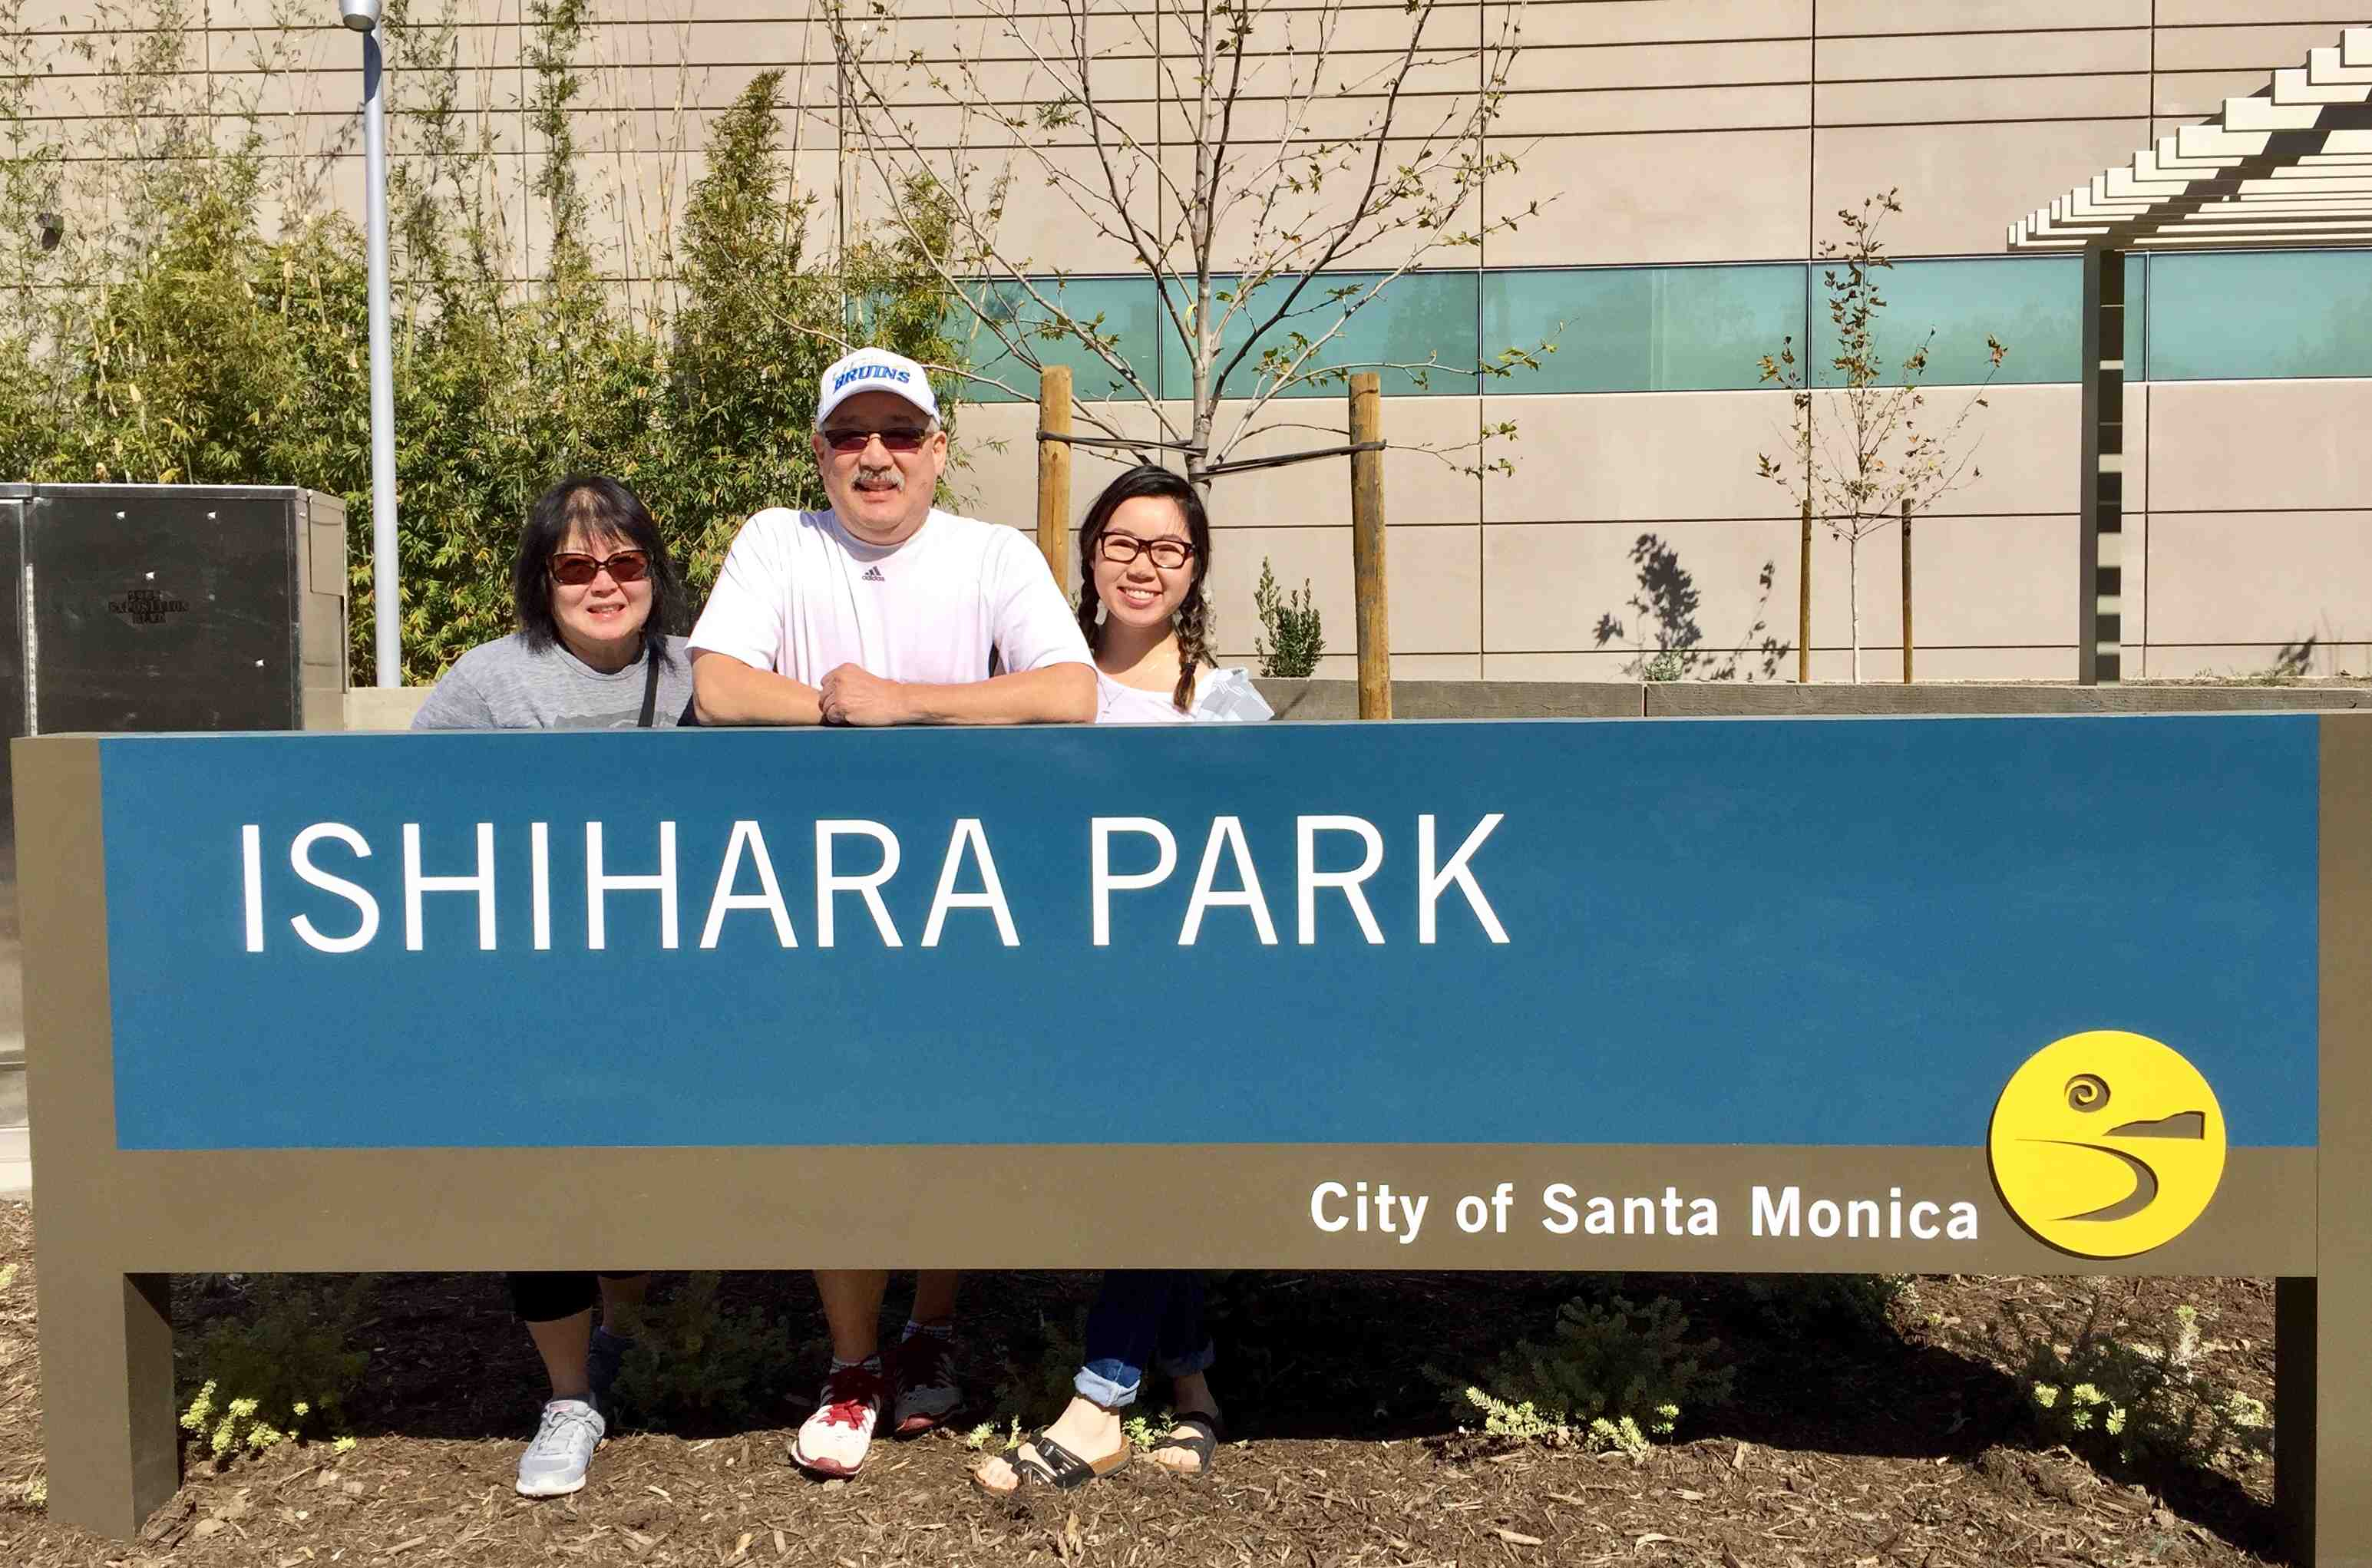 jon ishihara and family